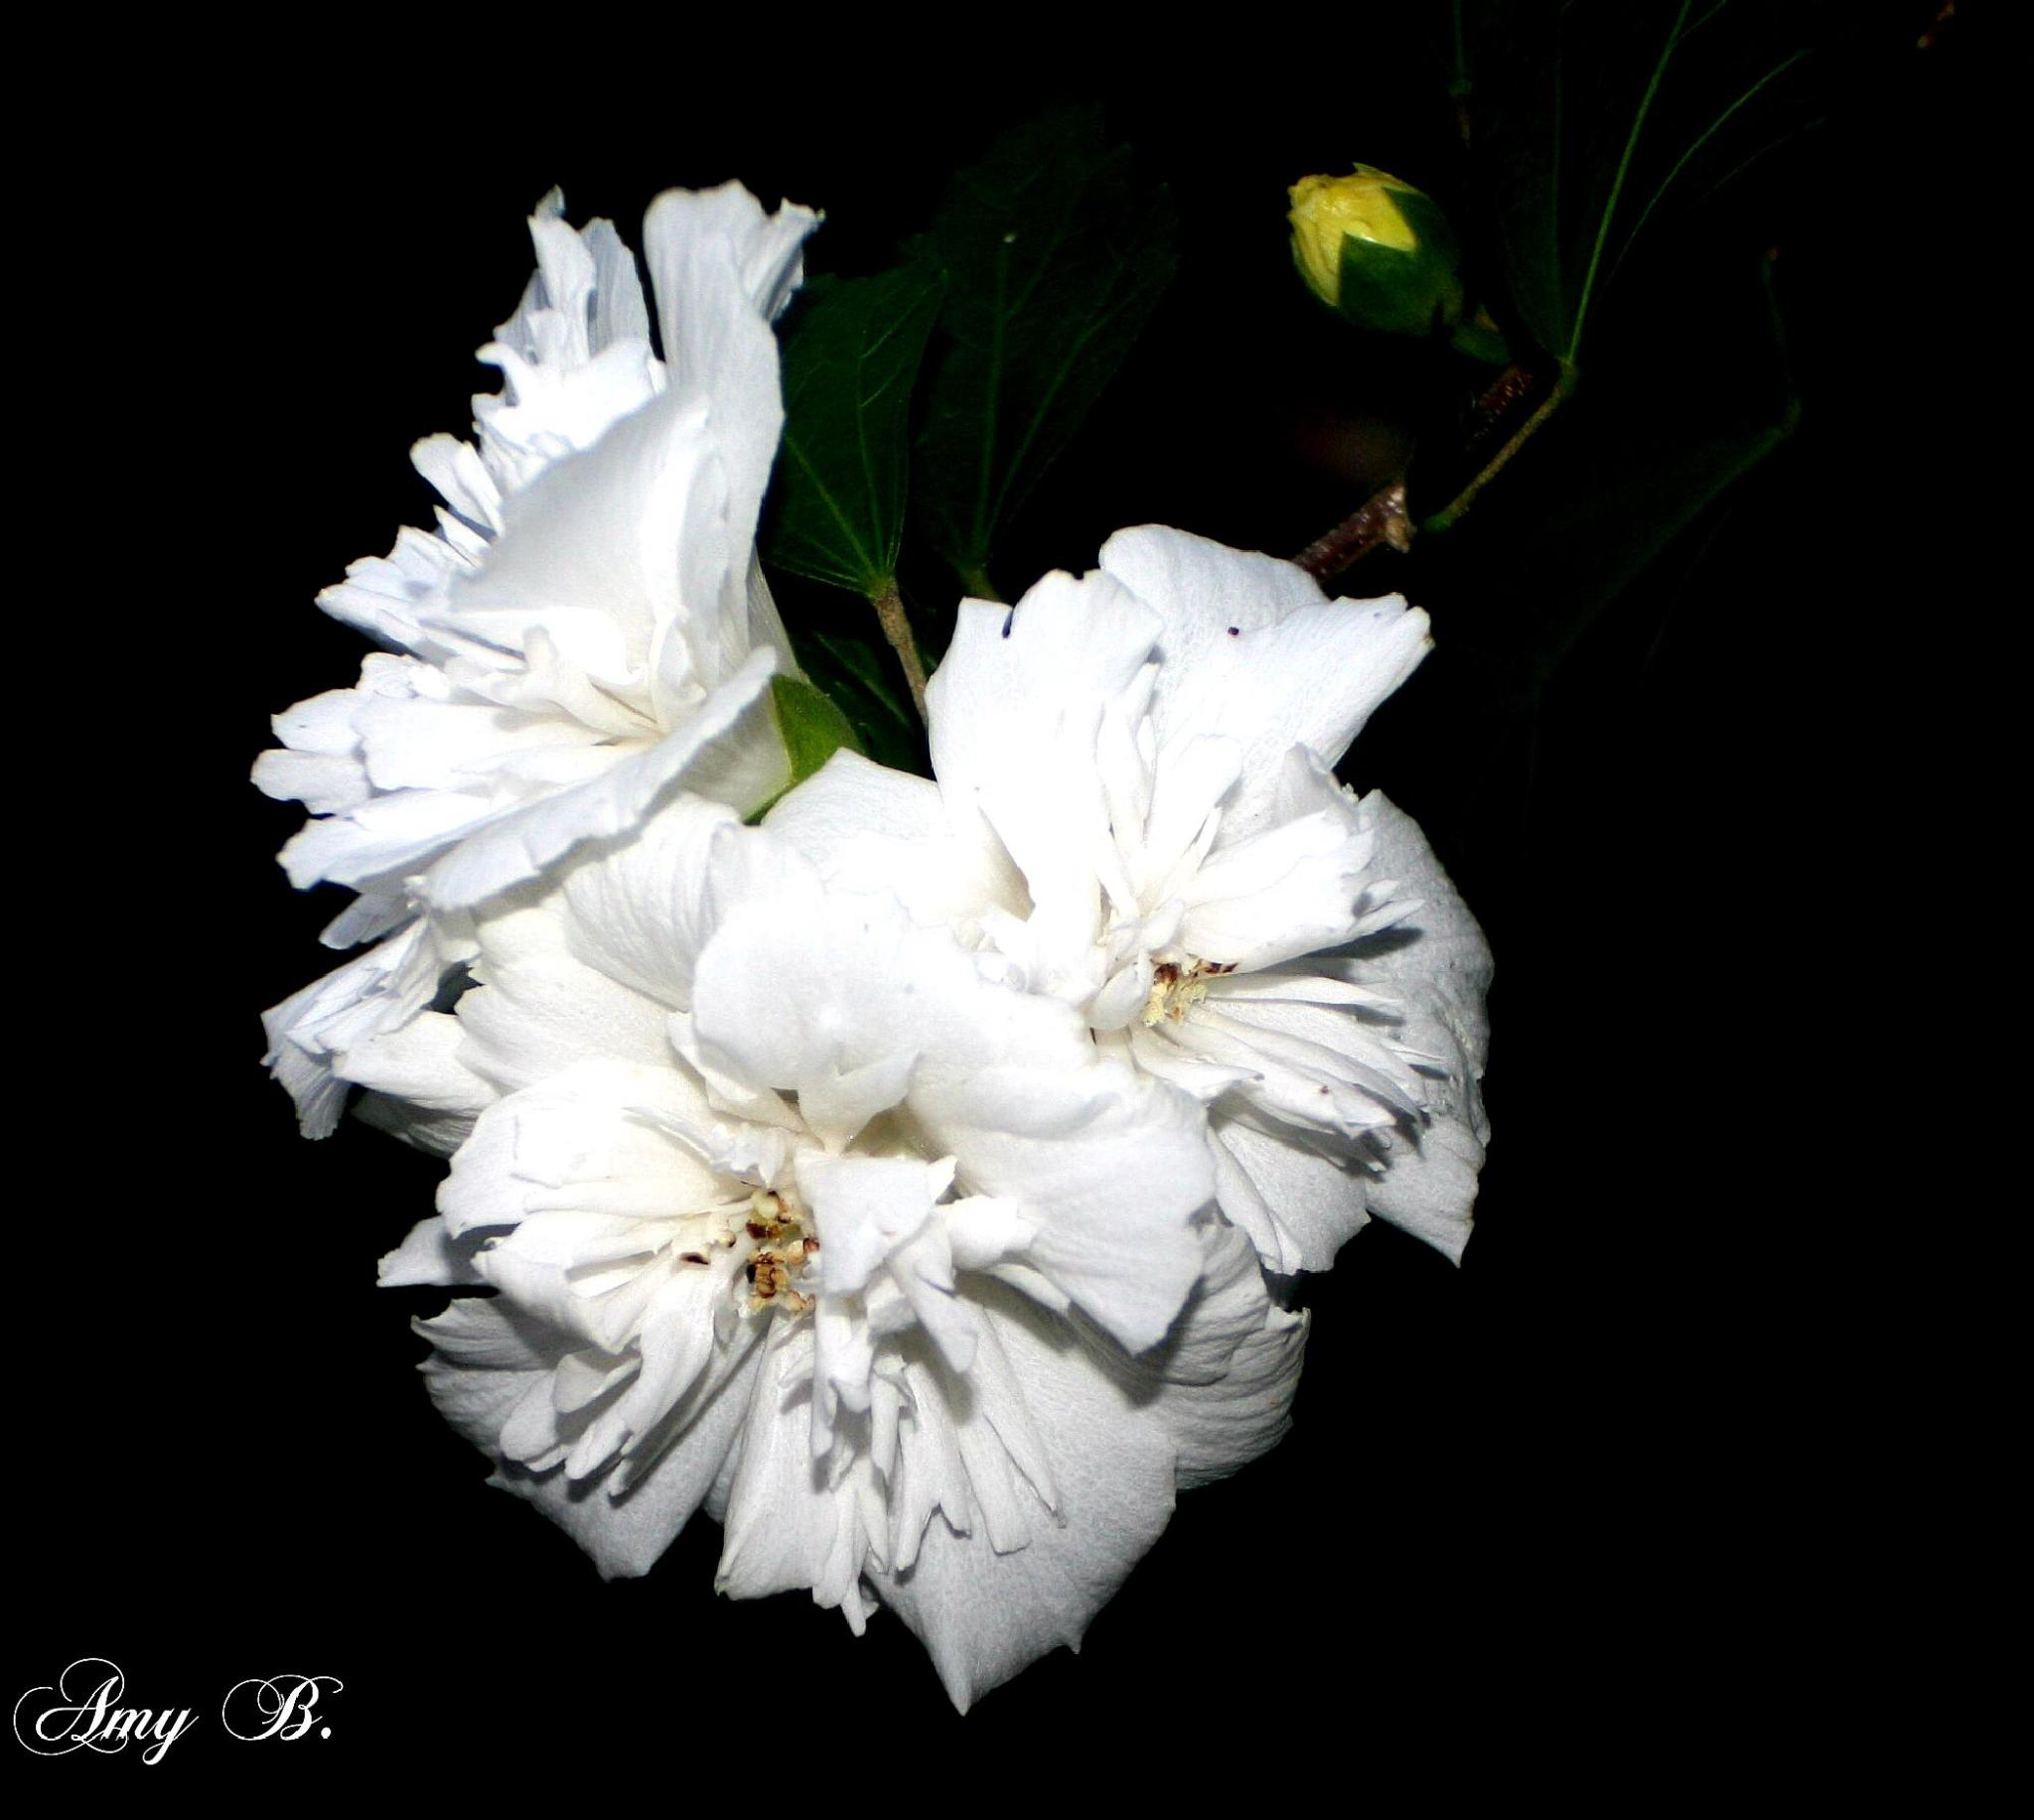 Three white flowers at night by amy.conger.9